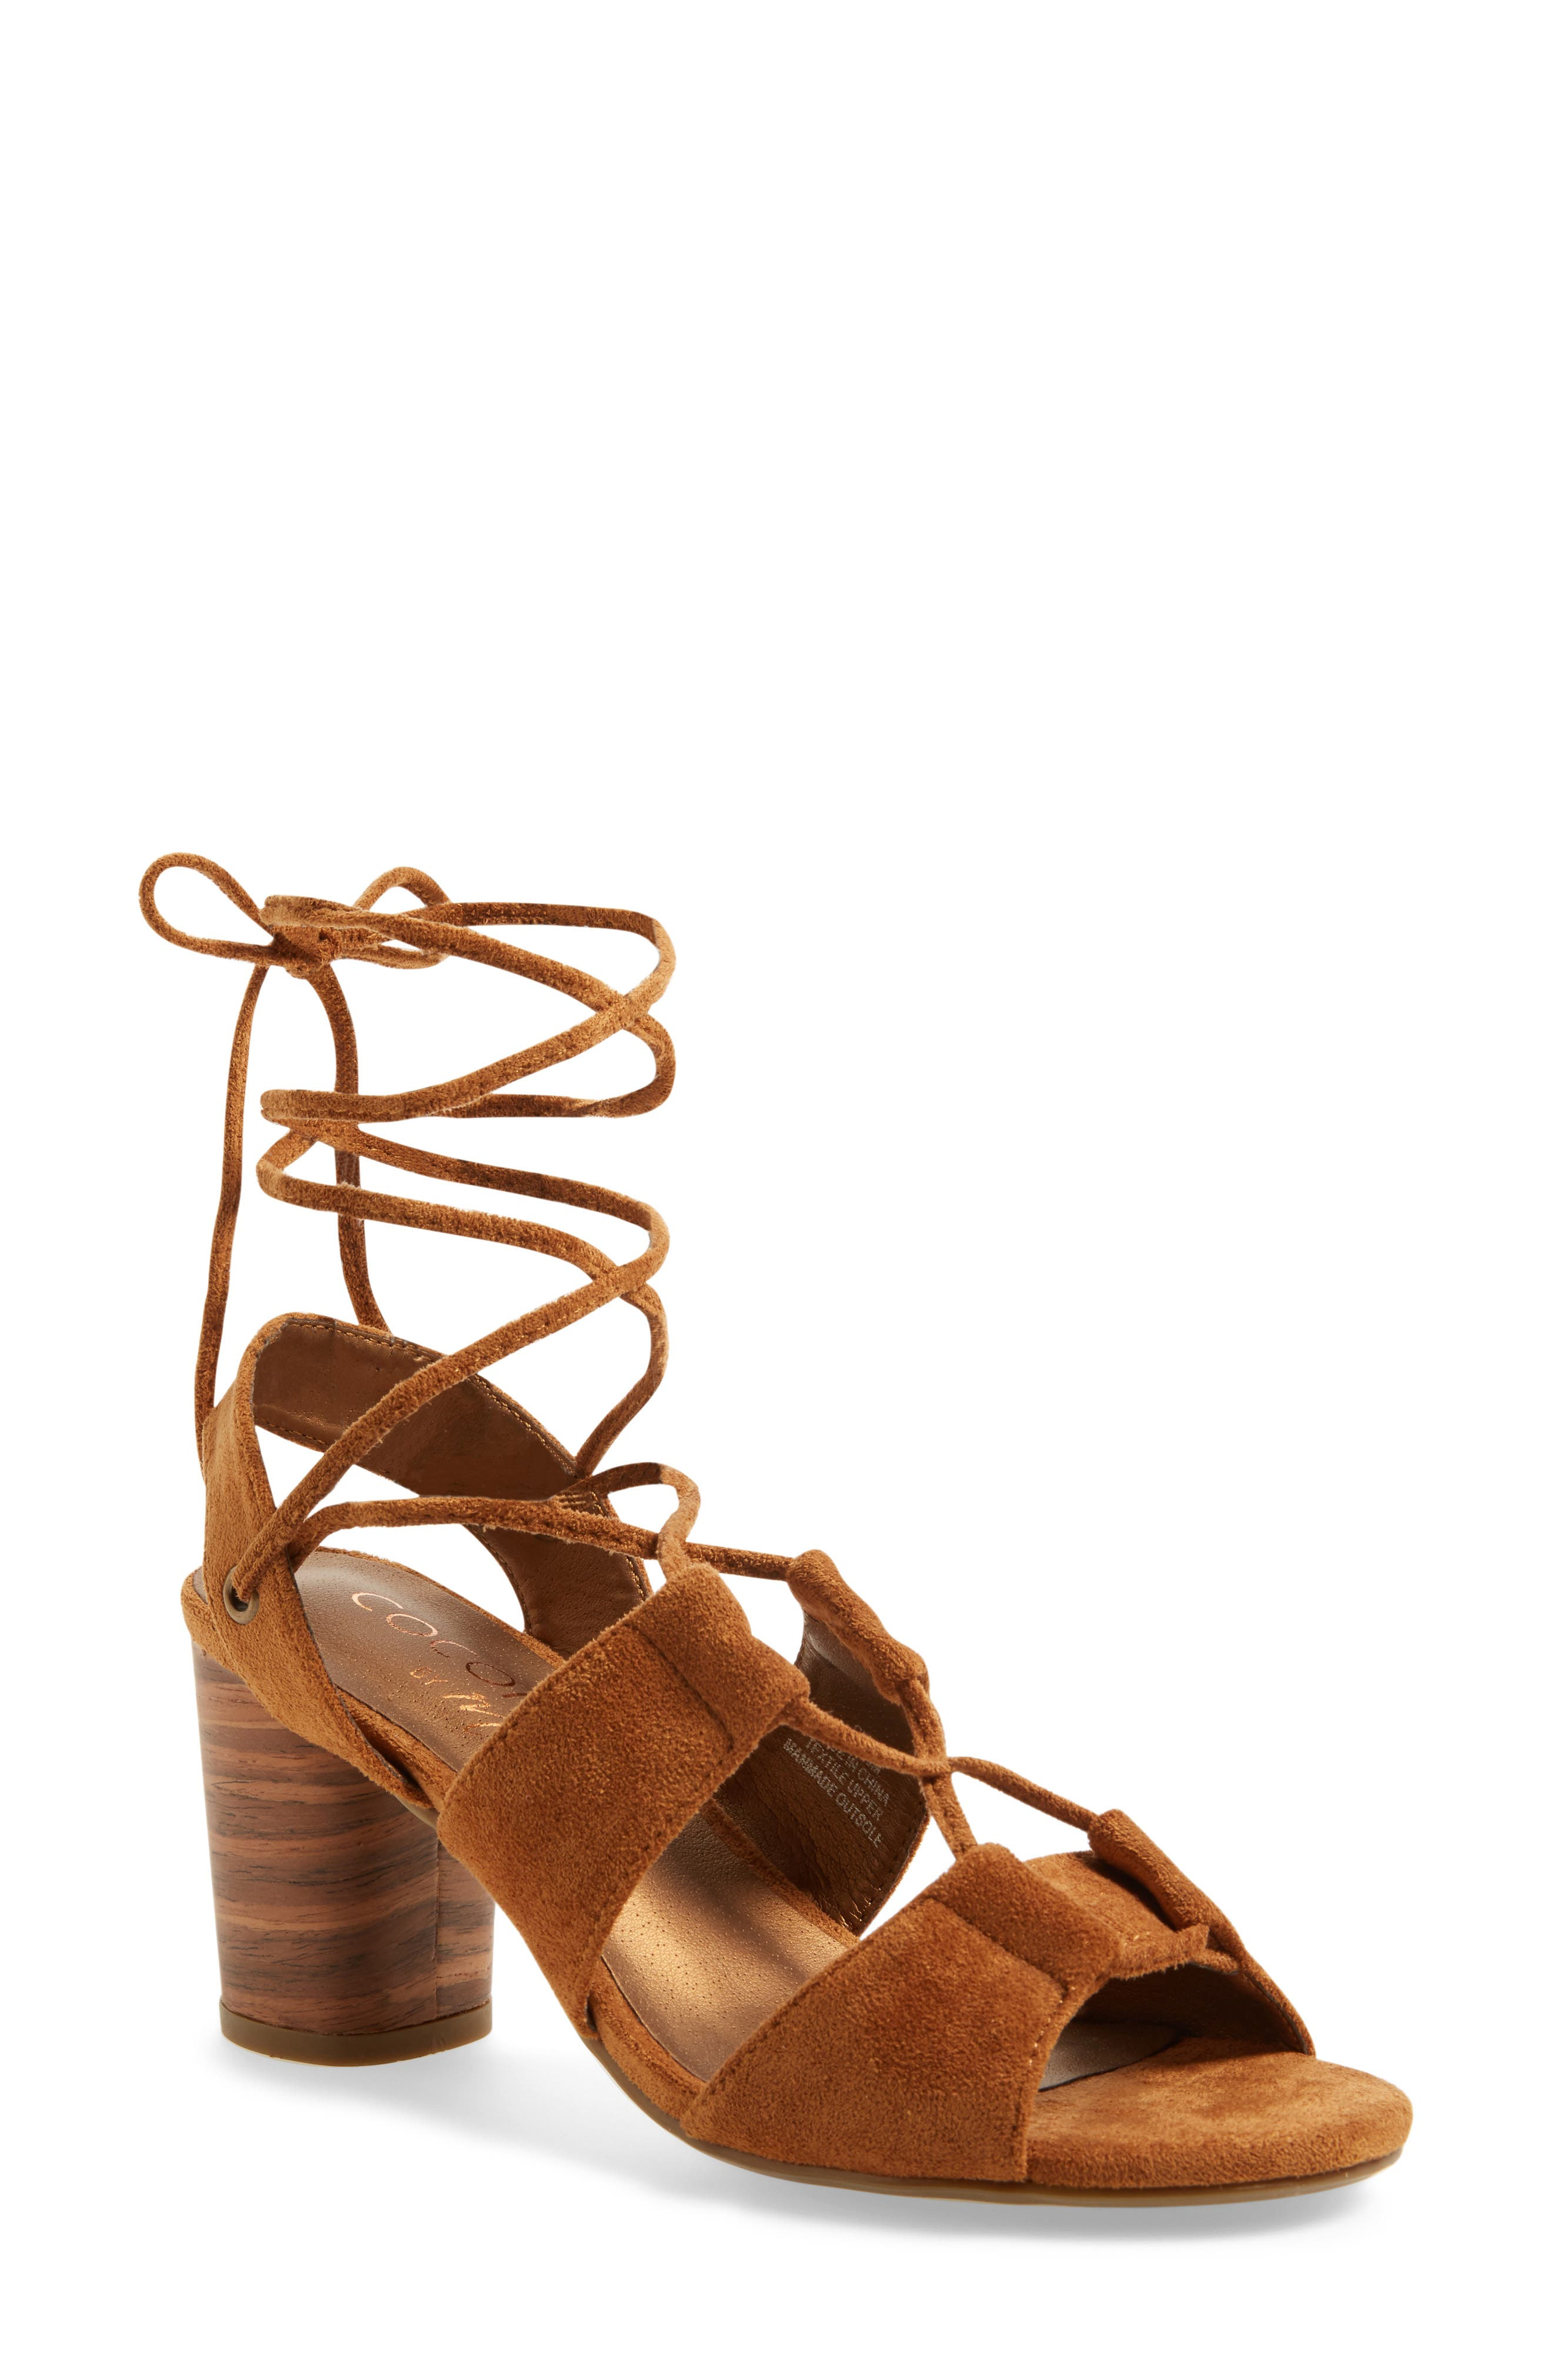 Coconuts by Matisse City Sandal,                             Main thumbnail 1, color,                             Saddle Suede